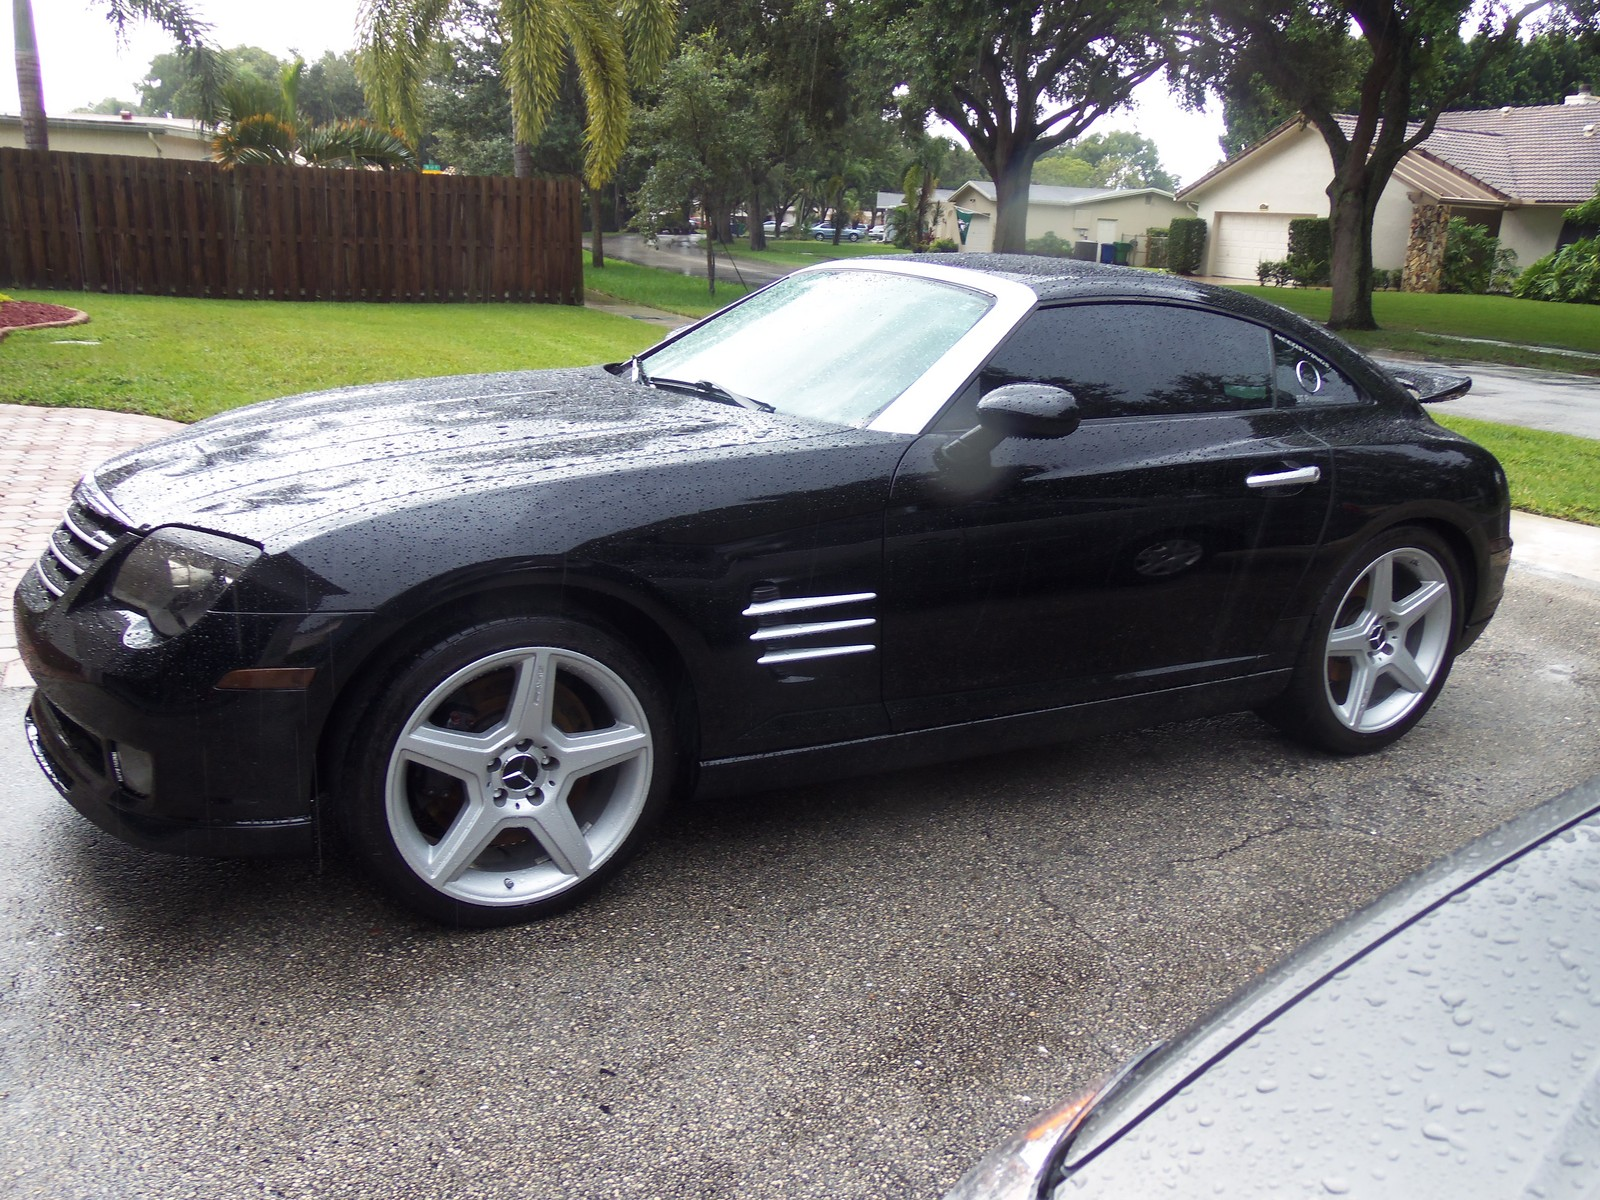 2005 chrysler crossfire jim 39 s srt 1 4 mile drag racing timeslip specs 0 60. Black Bedroom Furniture Sets. Home Design Ideas